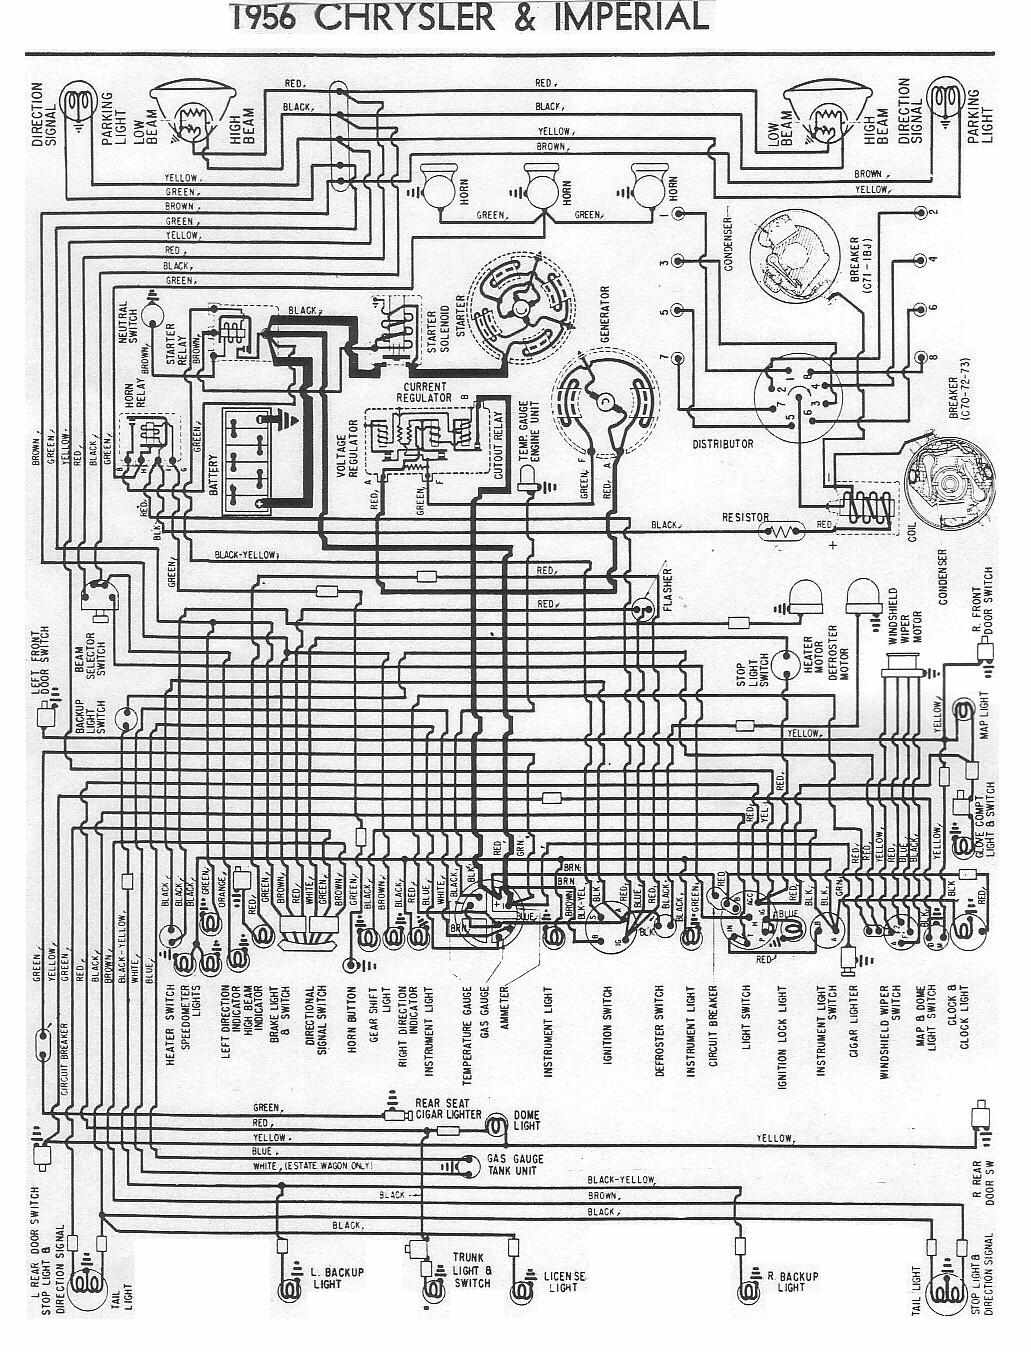 Electrical Wiring Diagrams Of 1956 Chrysler And Imperial All about